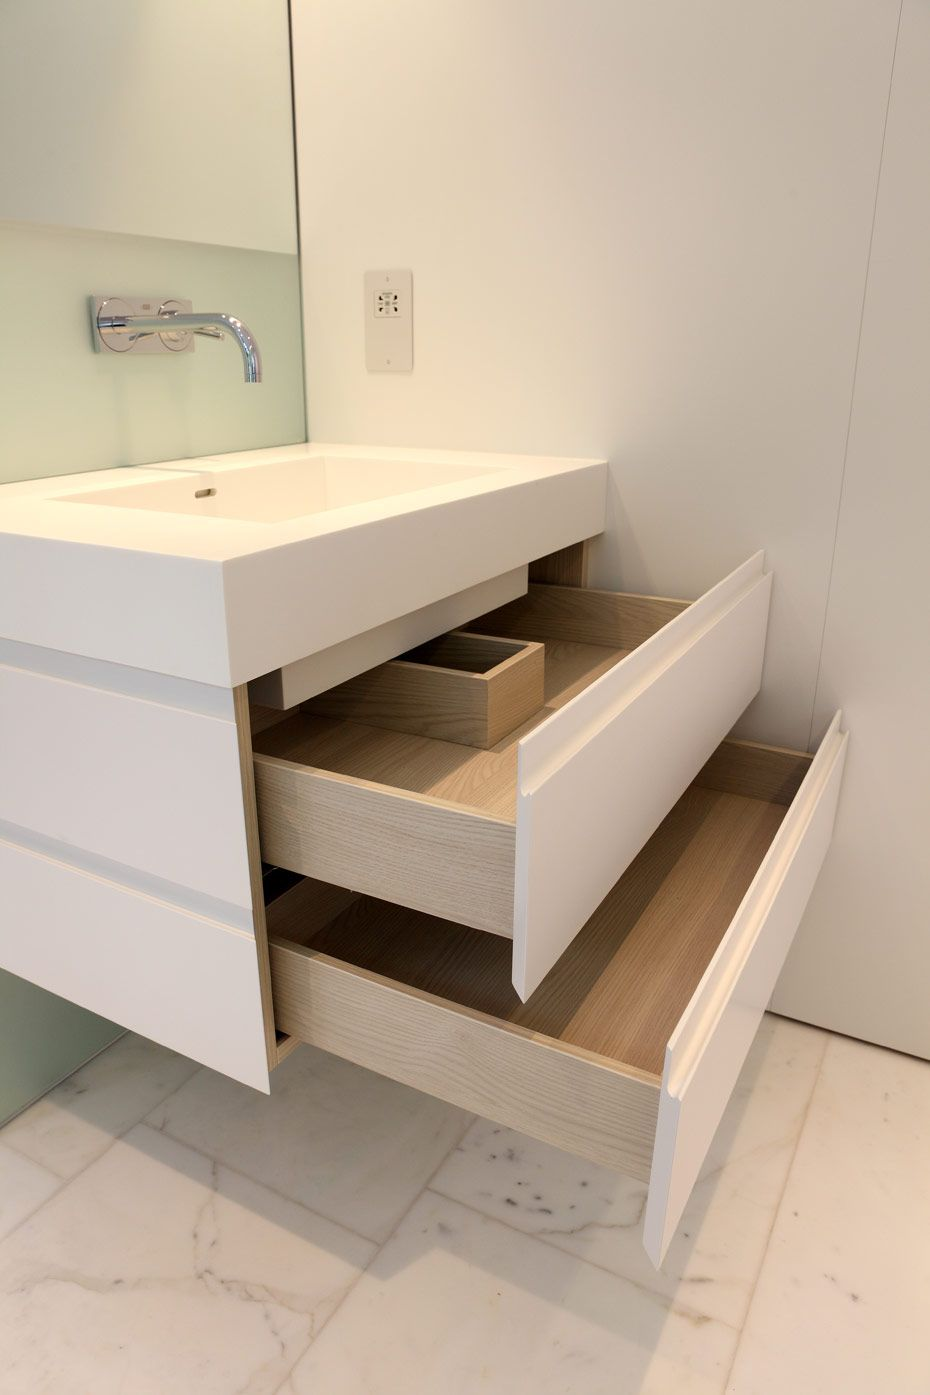 Interiorid project bespoke joinery london uk bathrooms